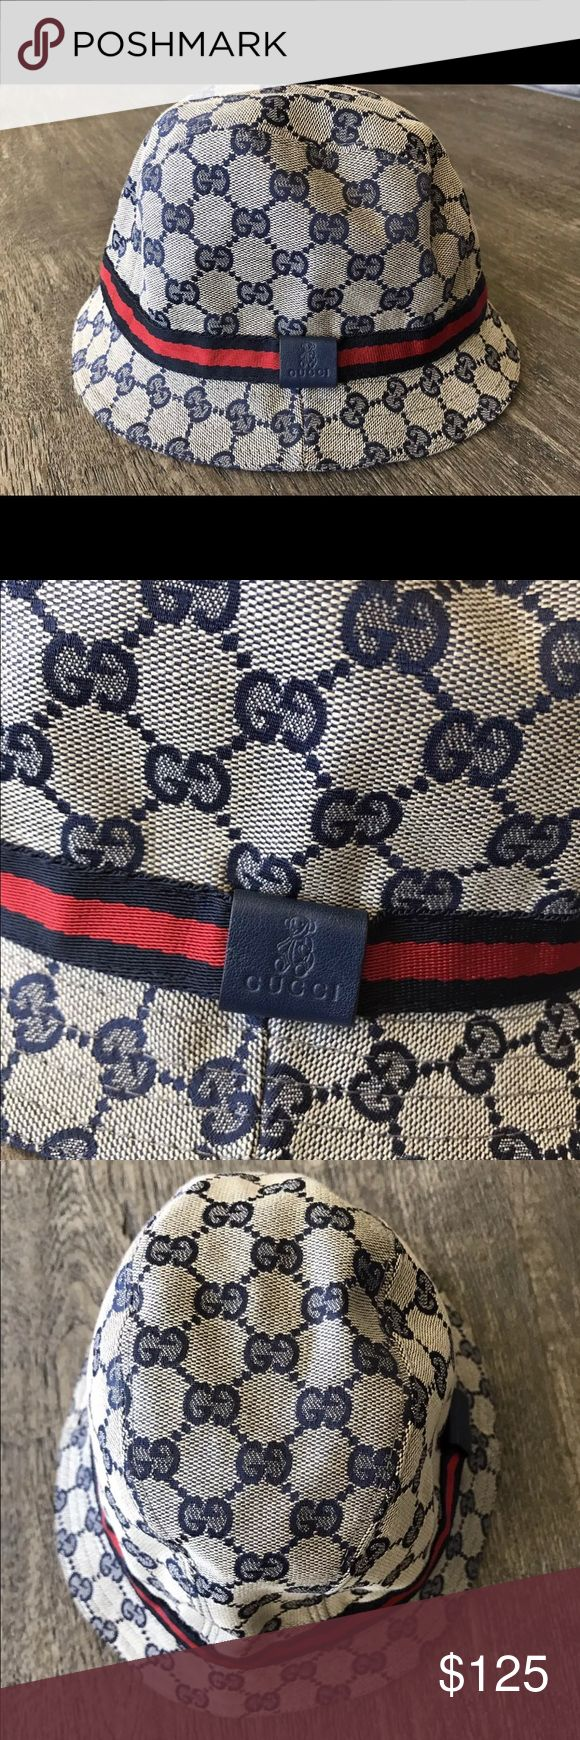 GUCCI Kids unisex bucket hat medium GG &web detail In GREAT condition! This adorable children's Gucci Bucket hat is a size medium   All items I sell are 100% authentic and come from a pet-free and smoke-free home. If you have any questions, please feel free to ask. Make sure you check out my other listings for more great deals!! Gucci Accessories Hats